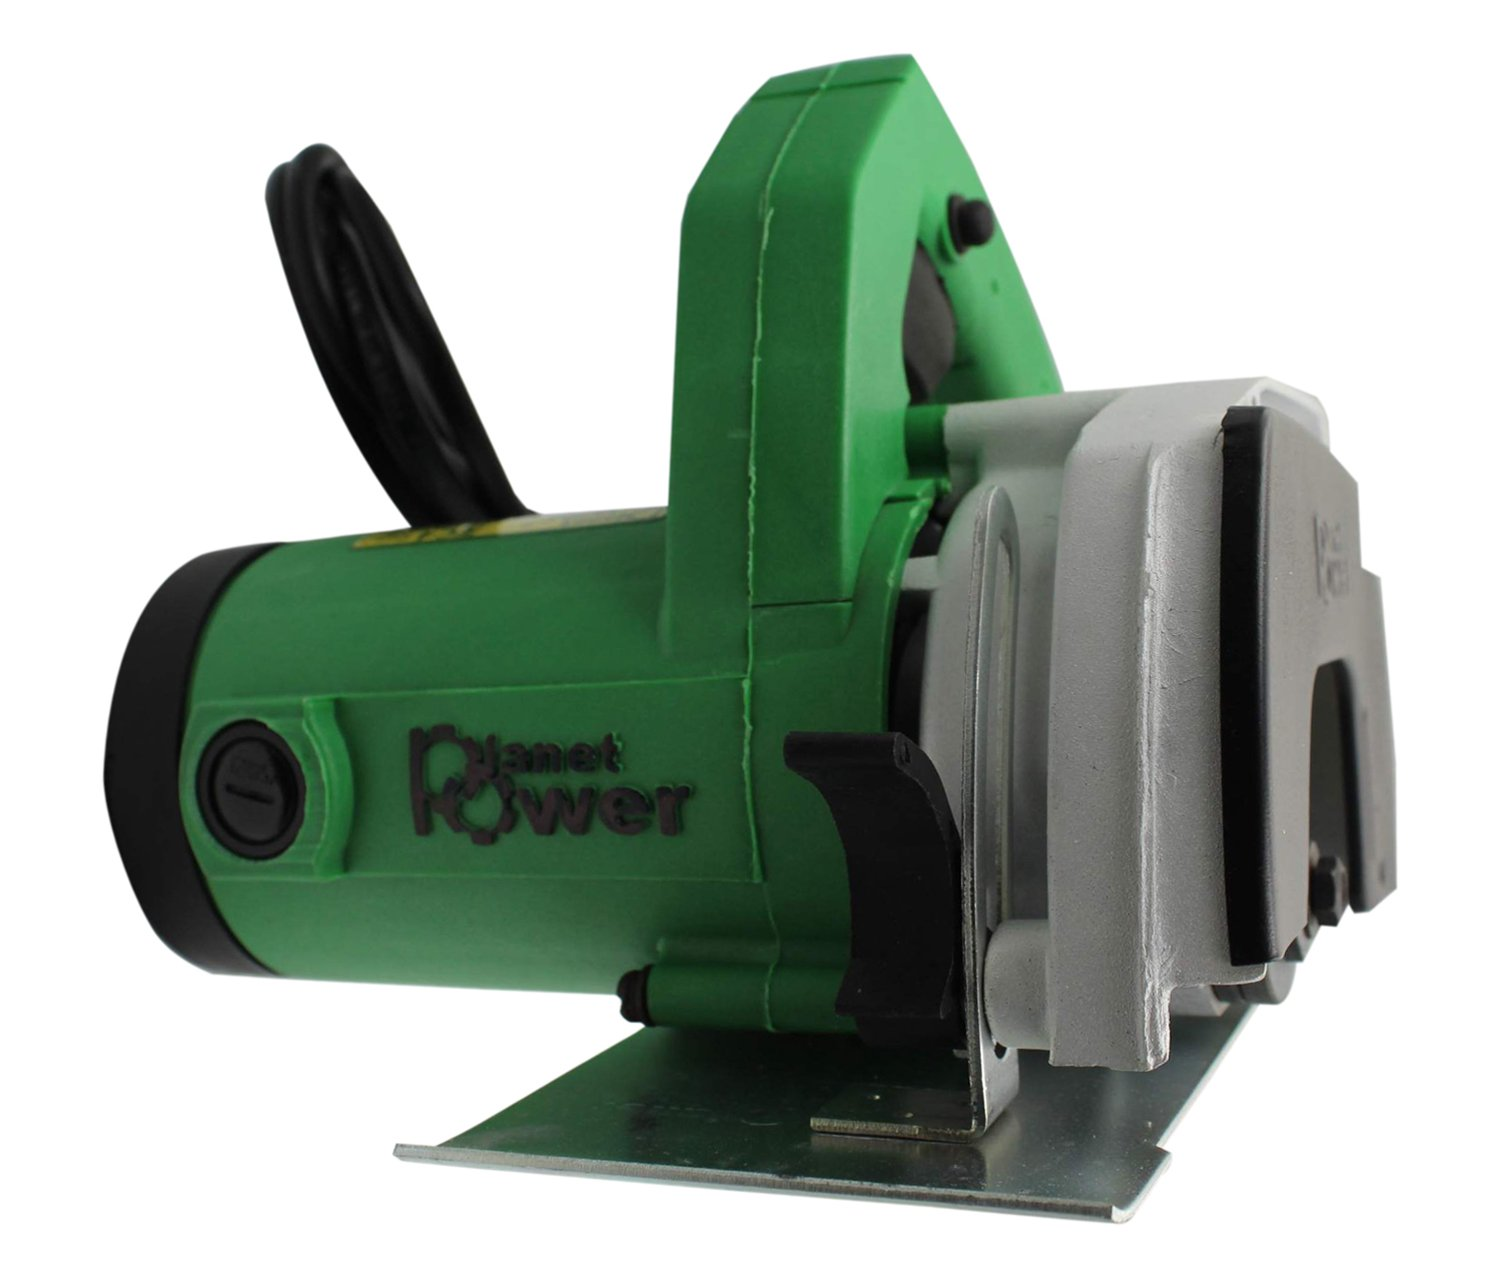 Planet Power Brand Cutting Power Tool